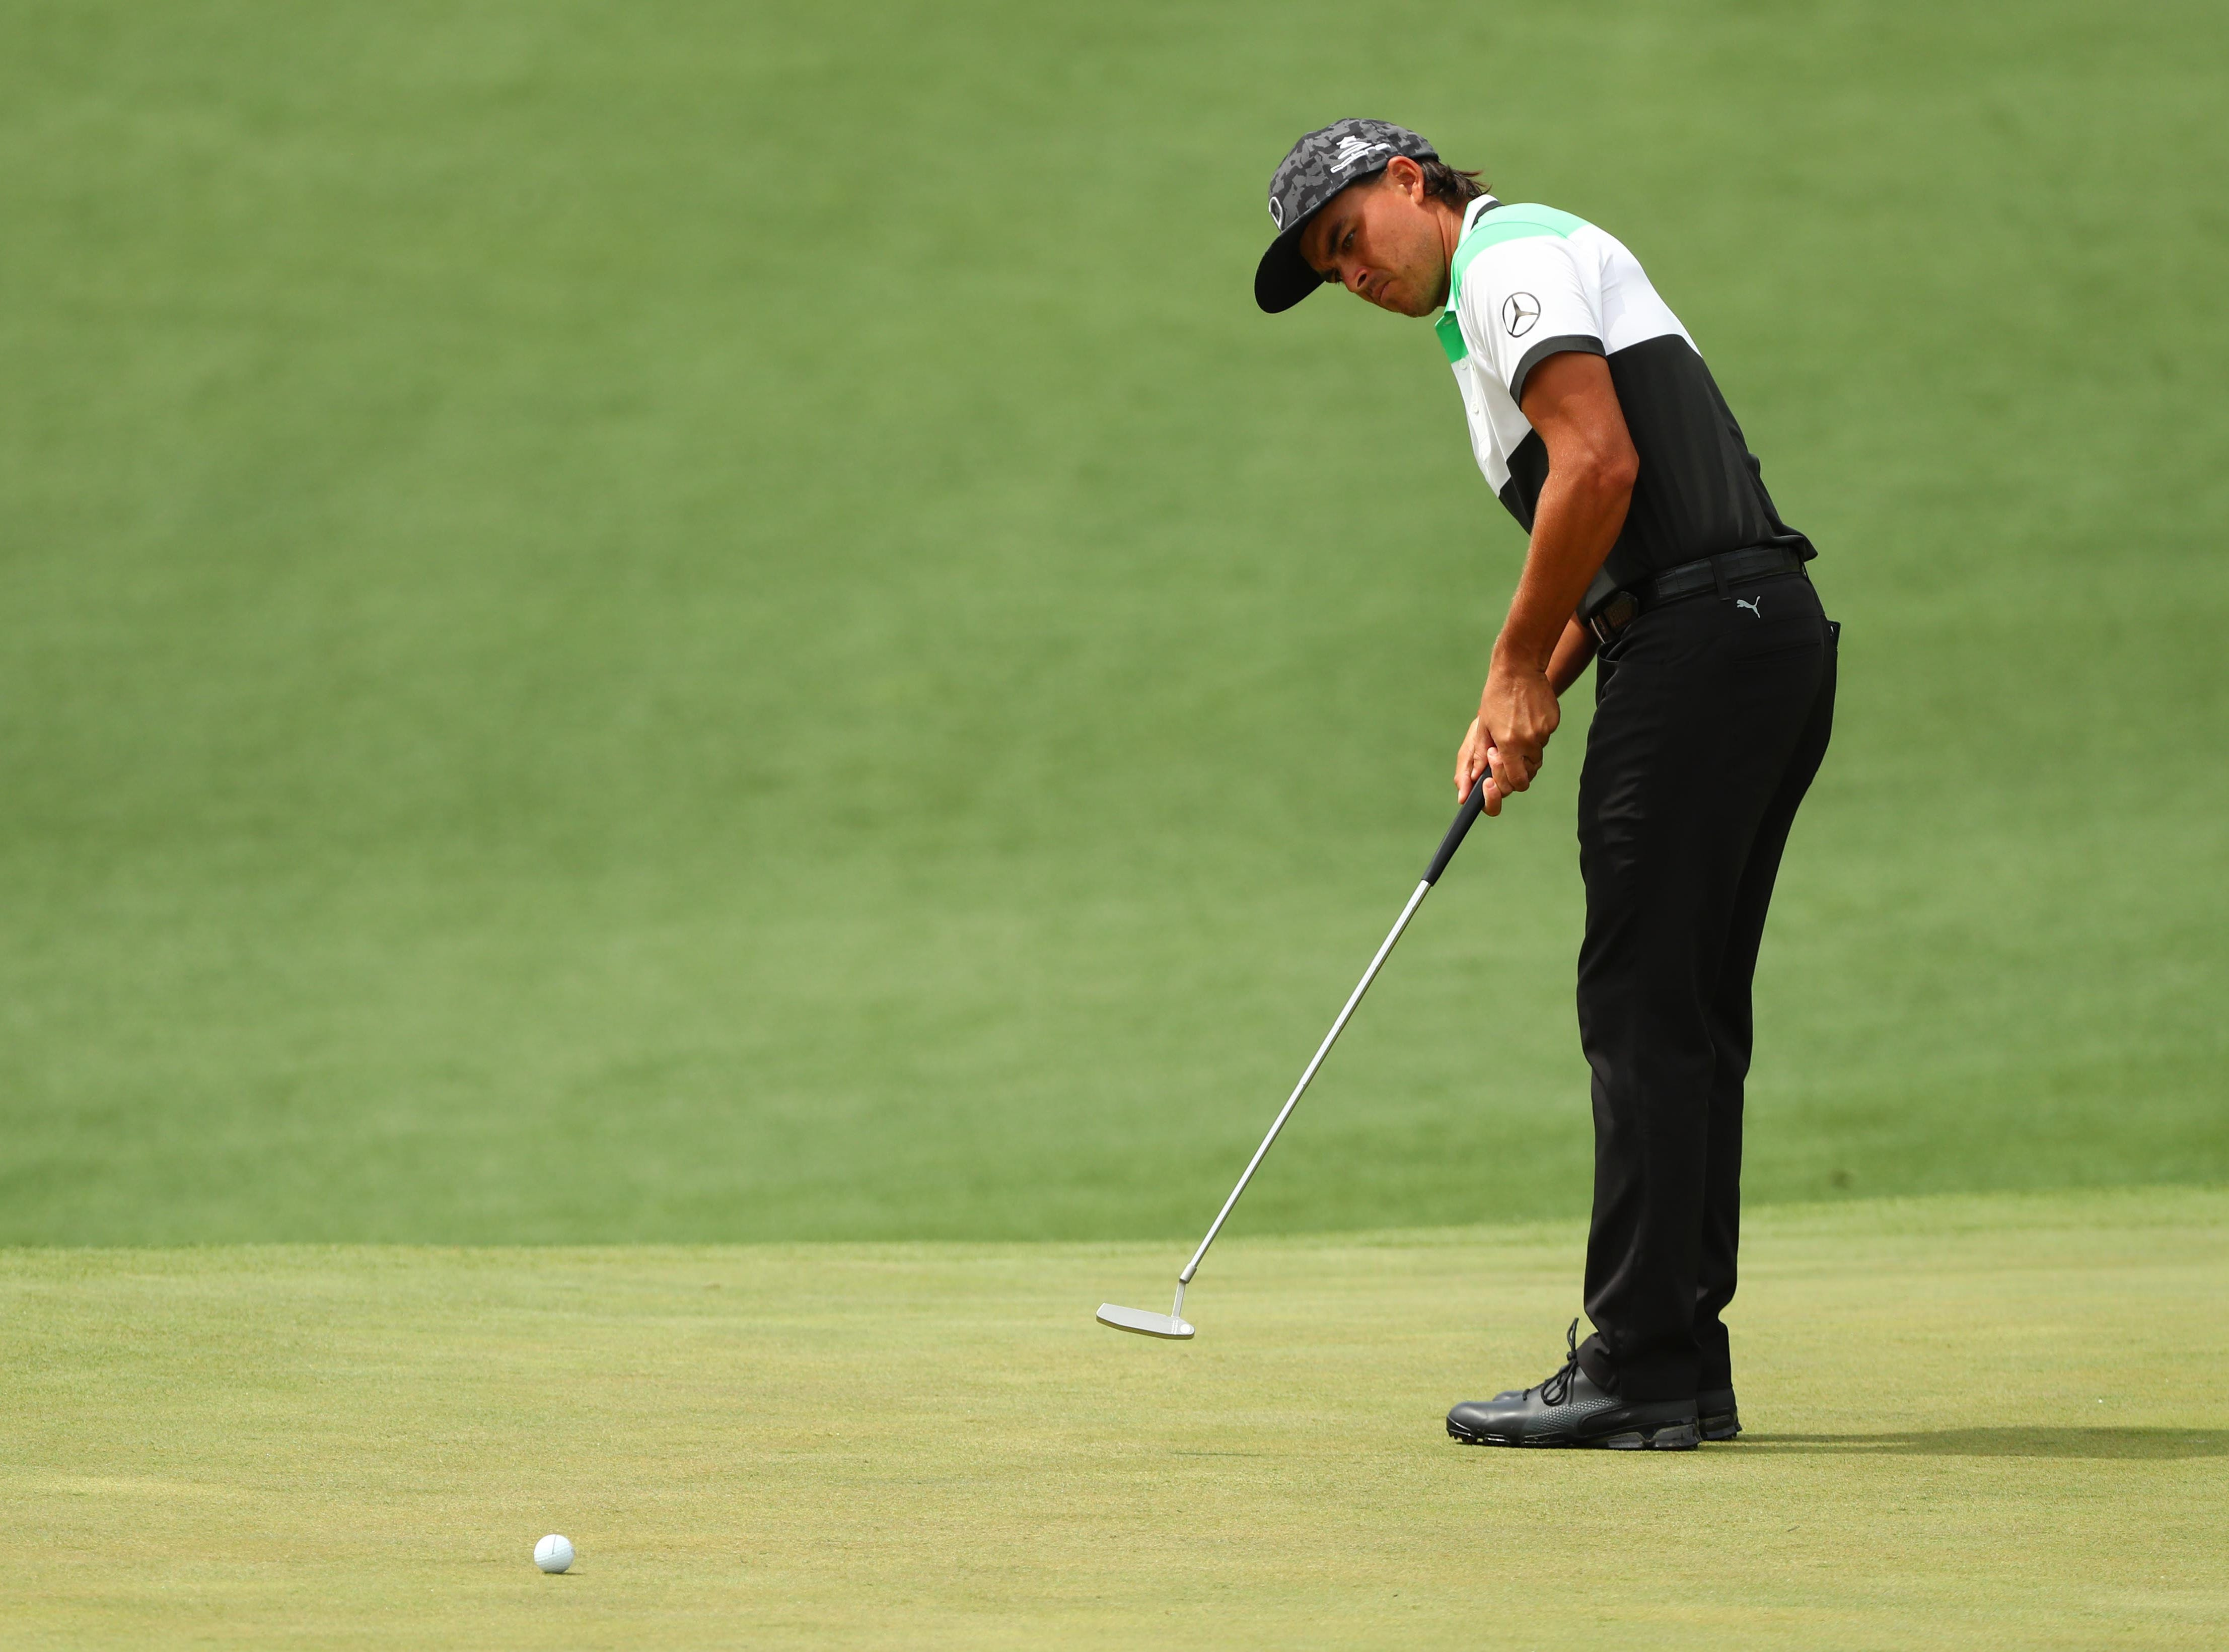 Apr 12, 2019; Augusta, GA, USA; Rickie Fowler putts on the 2nd green during the second round of The Masters golf tournament at Augusta National Golf Club. Mandatory Credit: Rob Schumacher-USA TODAY Sports